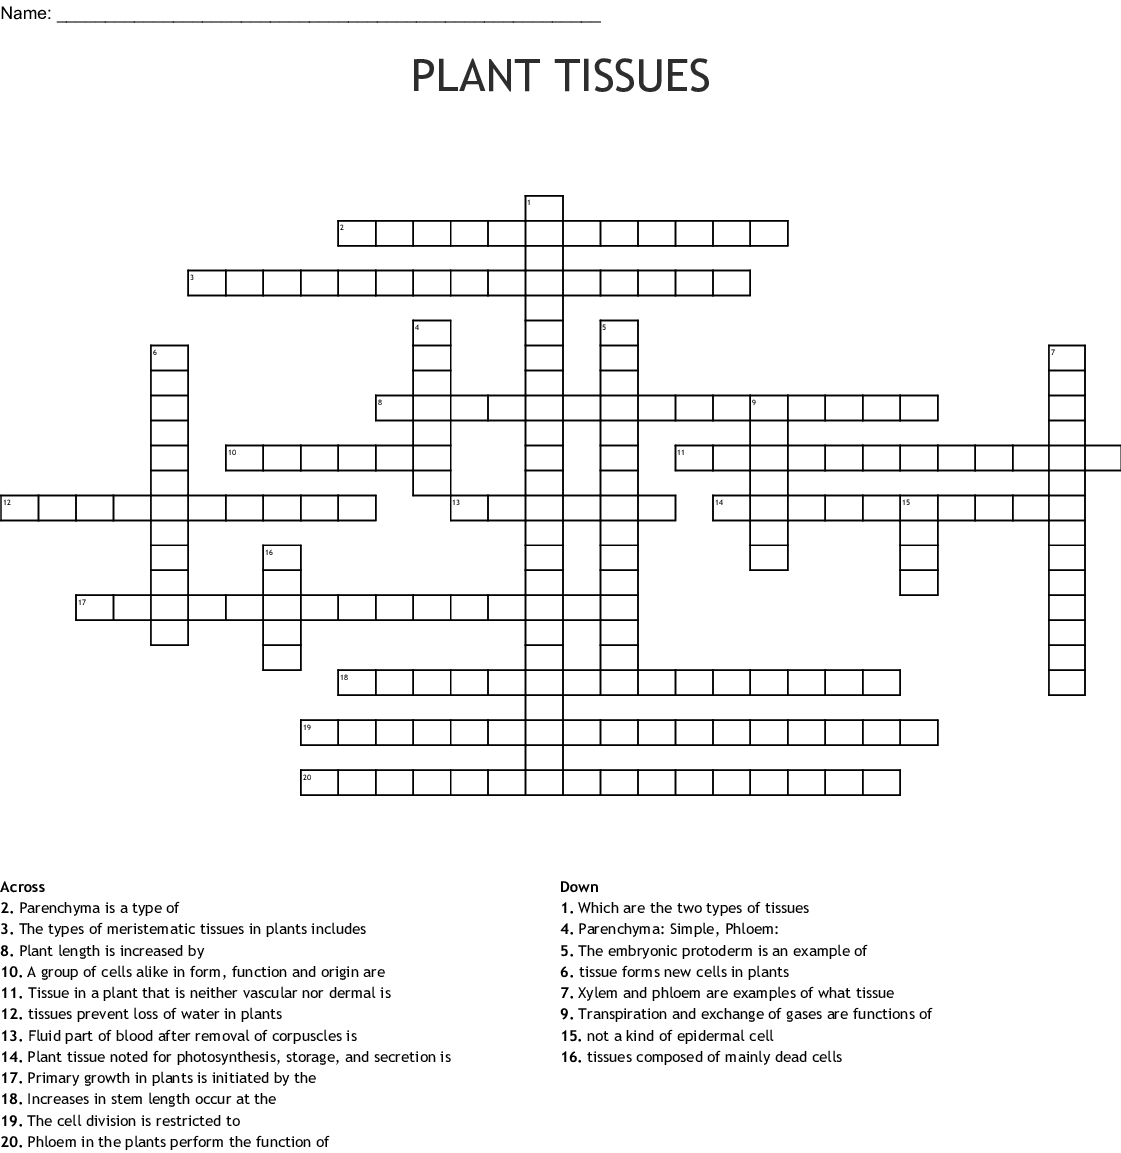 Plant Tissues Crossword